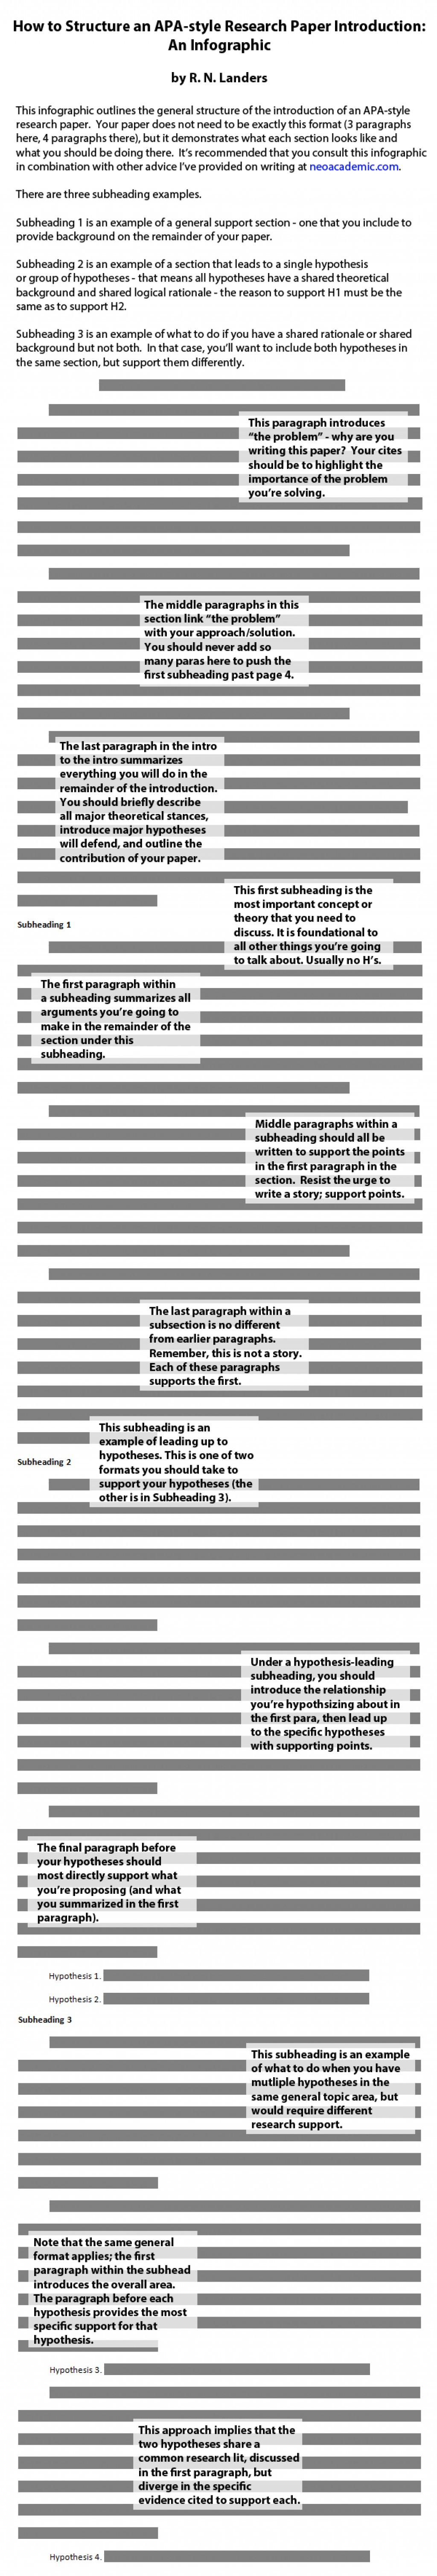 007 Intro Infographic2 Research Paper Writingn Introduction To Top Writing An A Effective For How Write Powerpoint Ppt Large